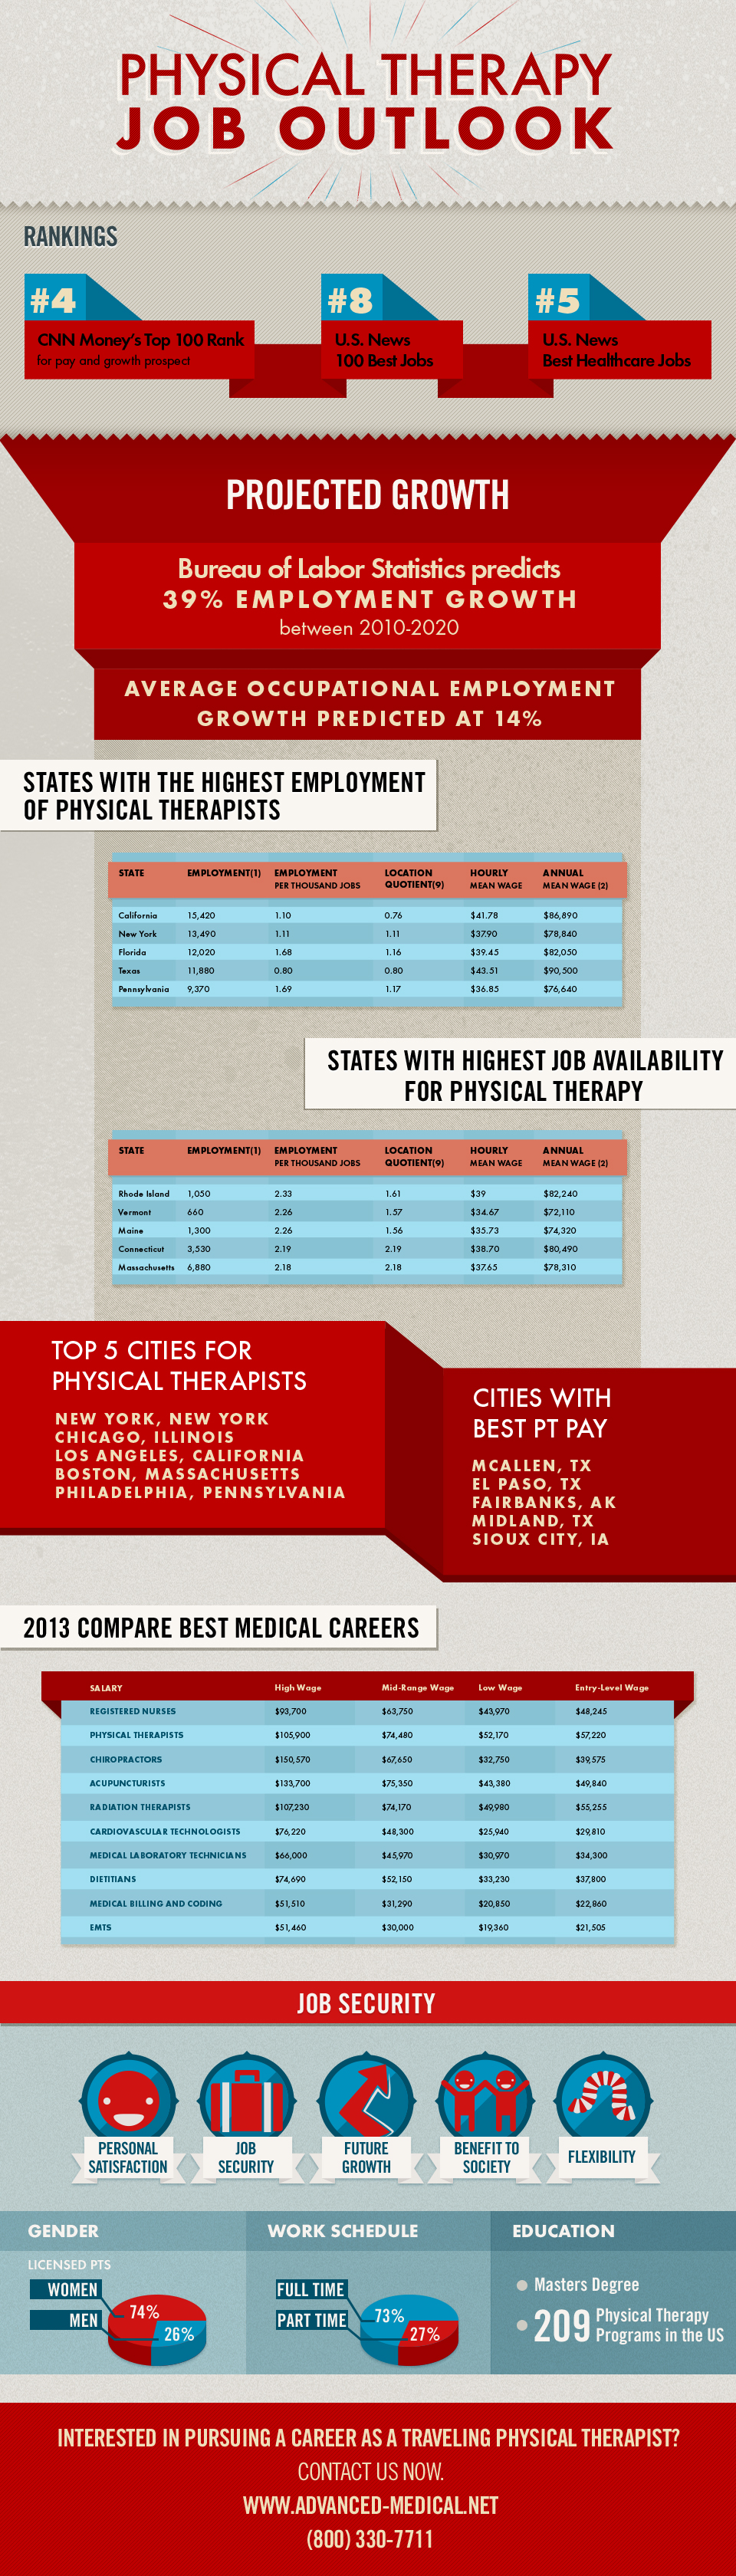 Physical Therapy Job outlook. View cities with highest job